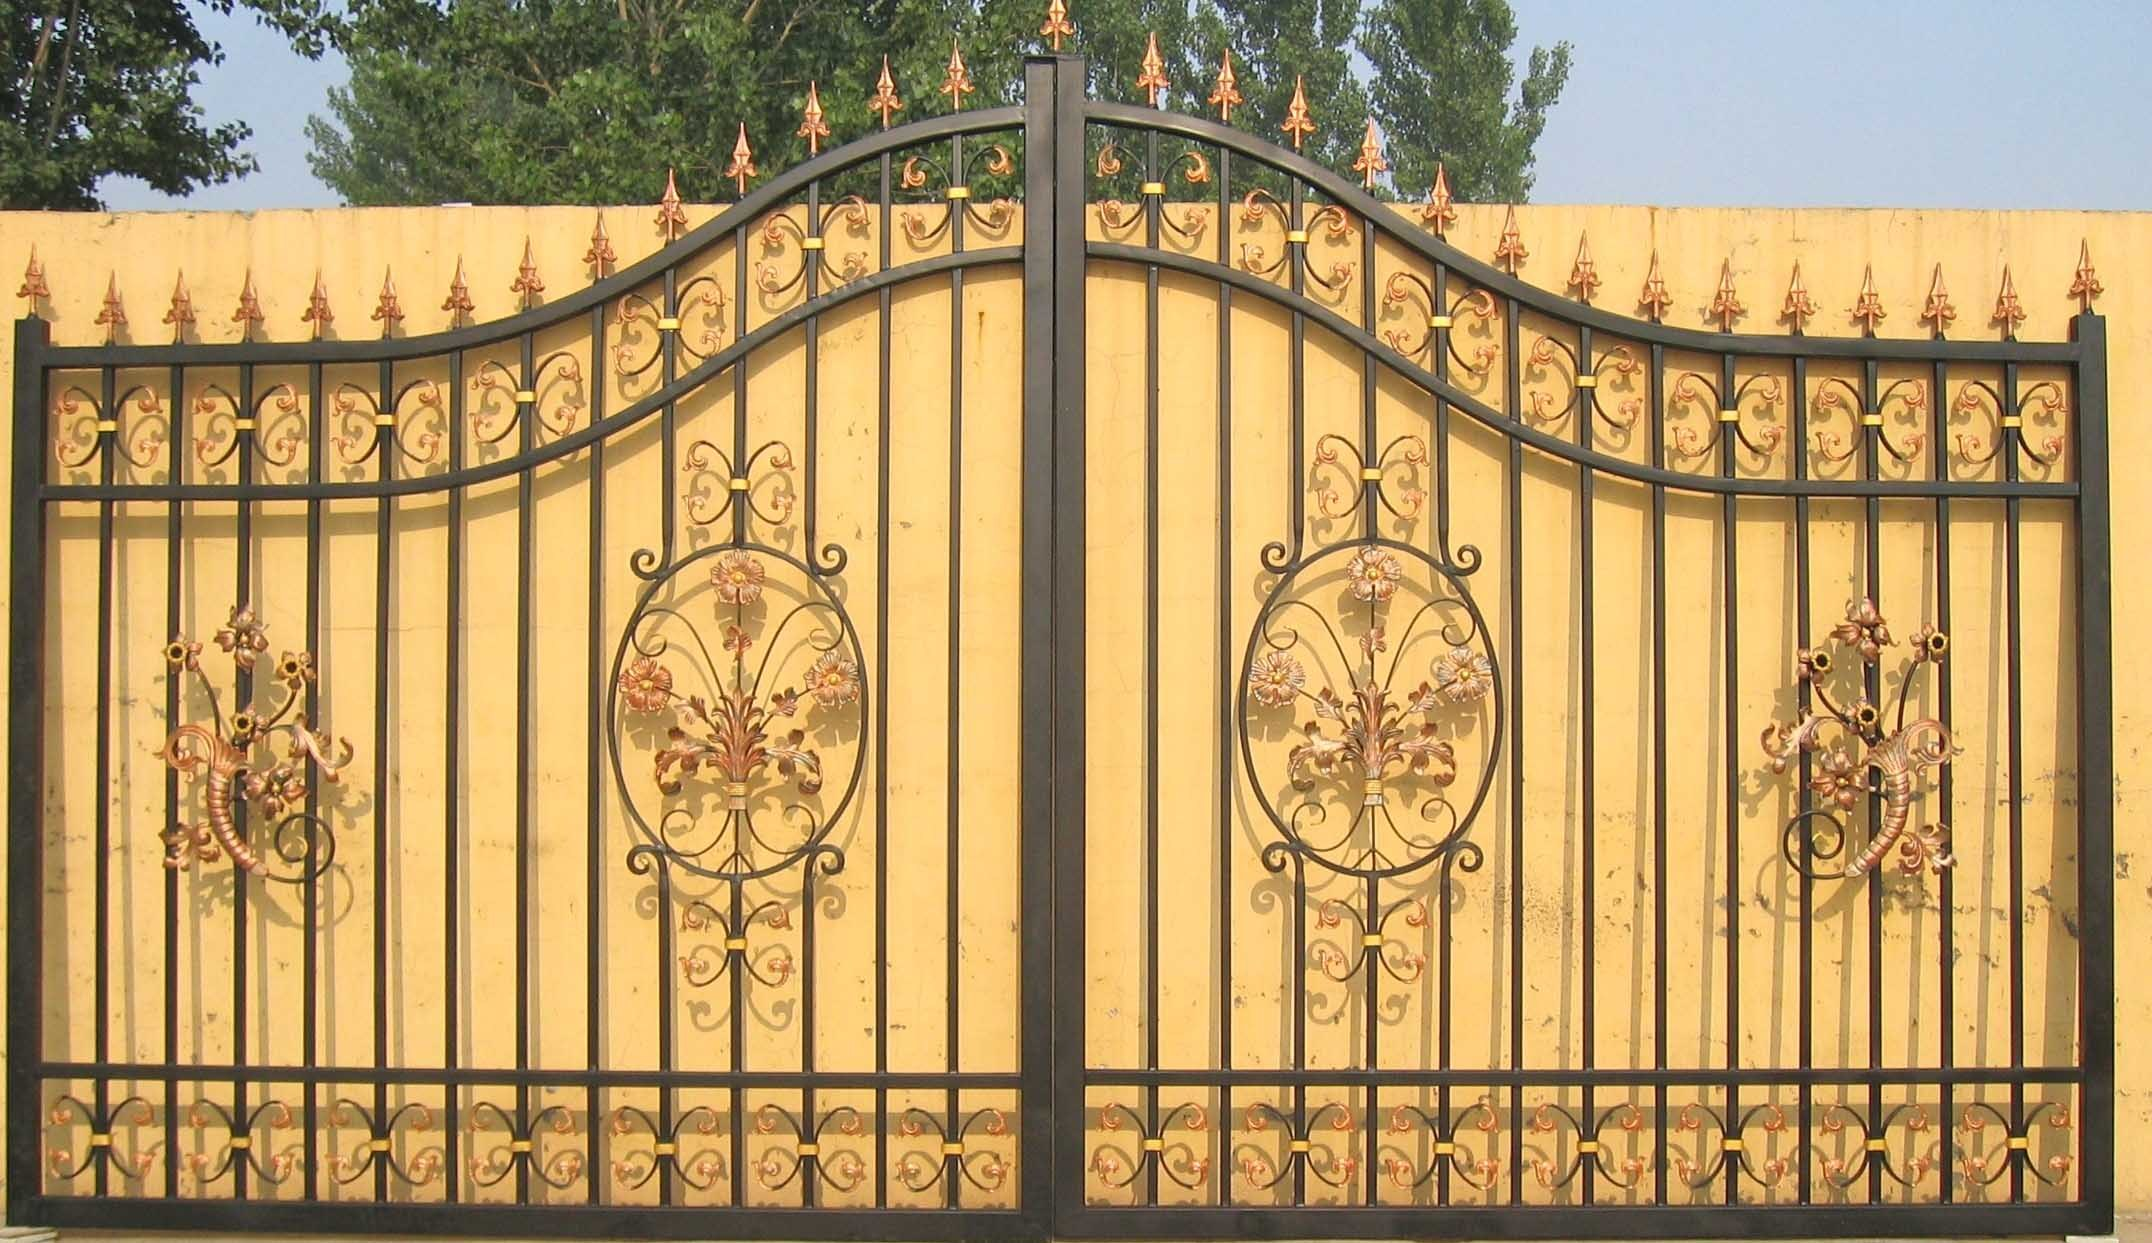 Fence gate iron wrought fencing Metal gate designs images